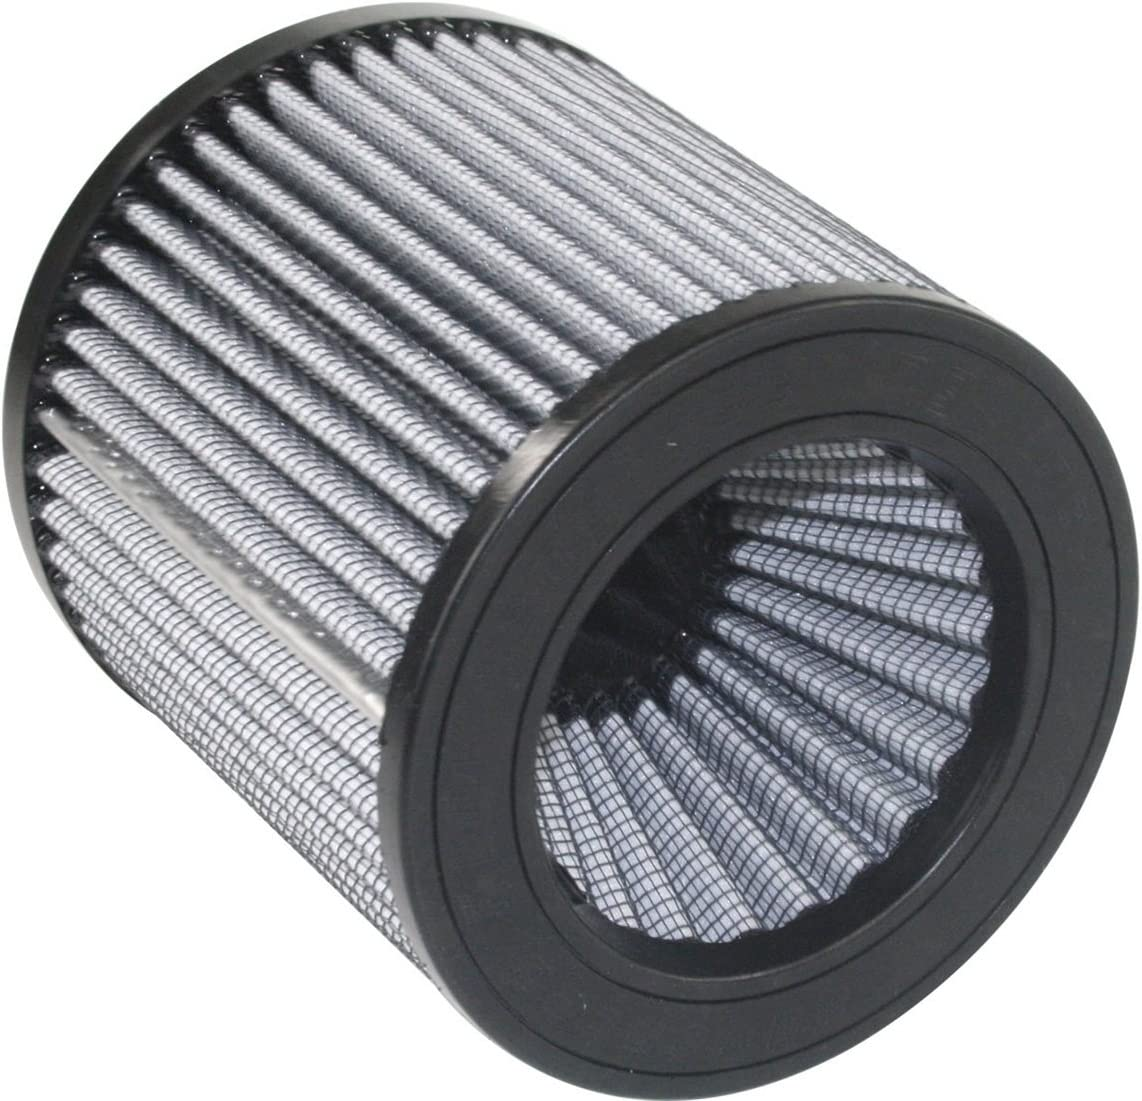 aFe Power 10-10121 Pro 5R Blue Magnum Flow OE Replacement Air Filter for Audi A4 V6 3.0L//3.2L